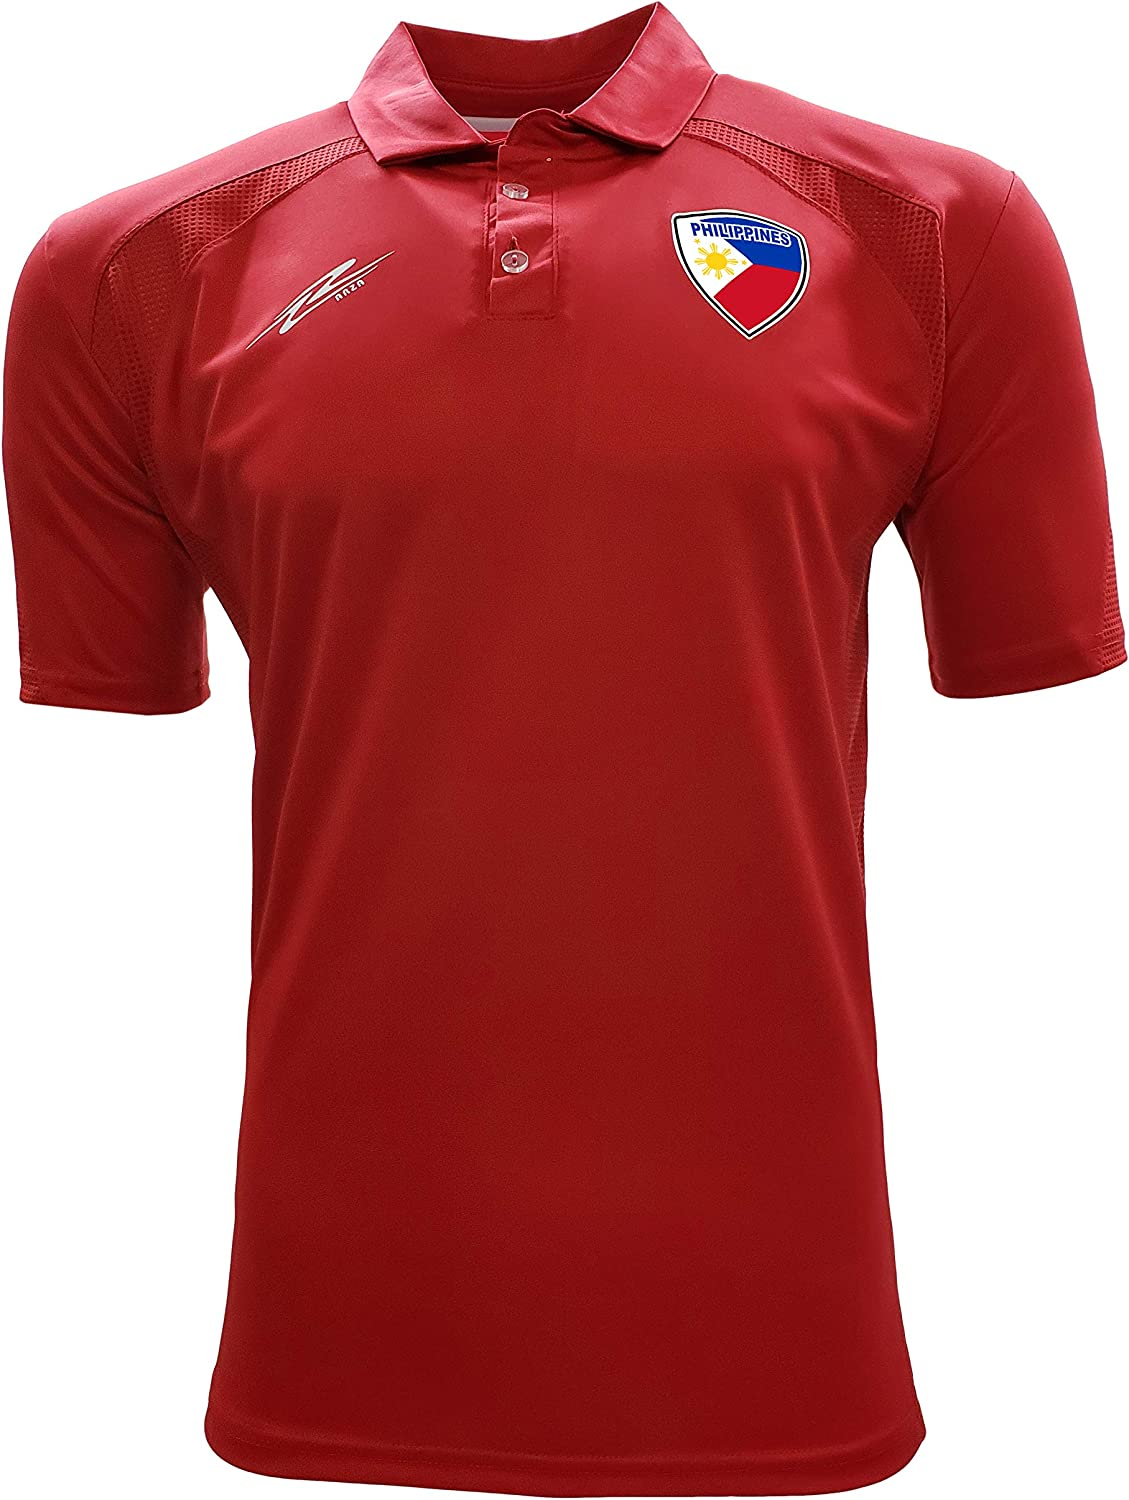 Arza Sports Philippines Polo Shirt for Men Color Black/White/Red/Blue/Burgundy